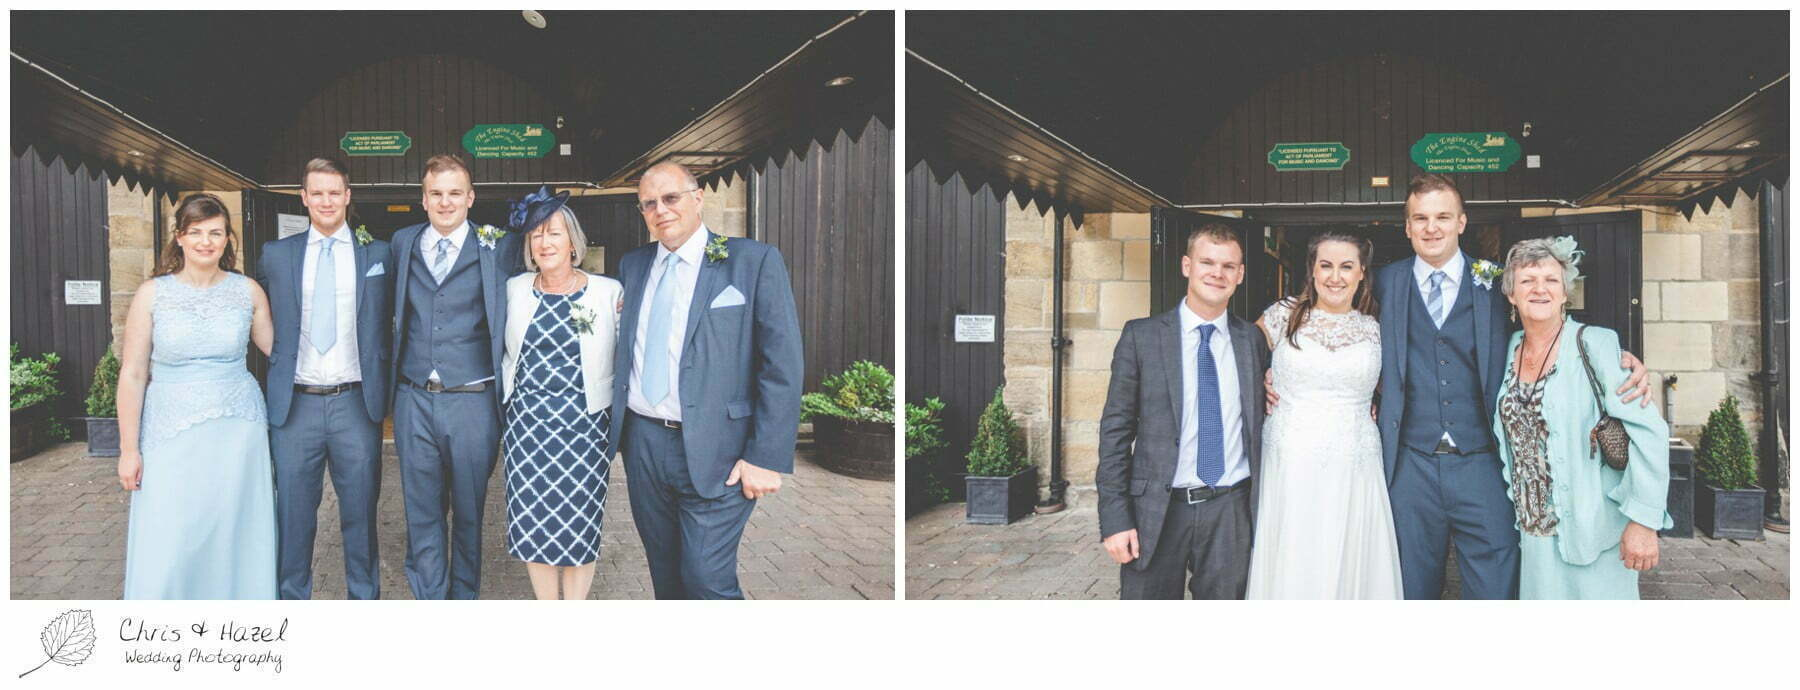 formal family photographs outside the engine shed, wedding, south milford Wedding Photographer, the engine shed, wetherby wedding venue, Wedding Photography wetherby, Chris and Hazel Wedding Photography, stevie pollard, stevie standerline, paul standerline,